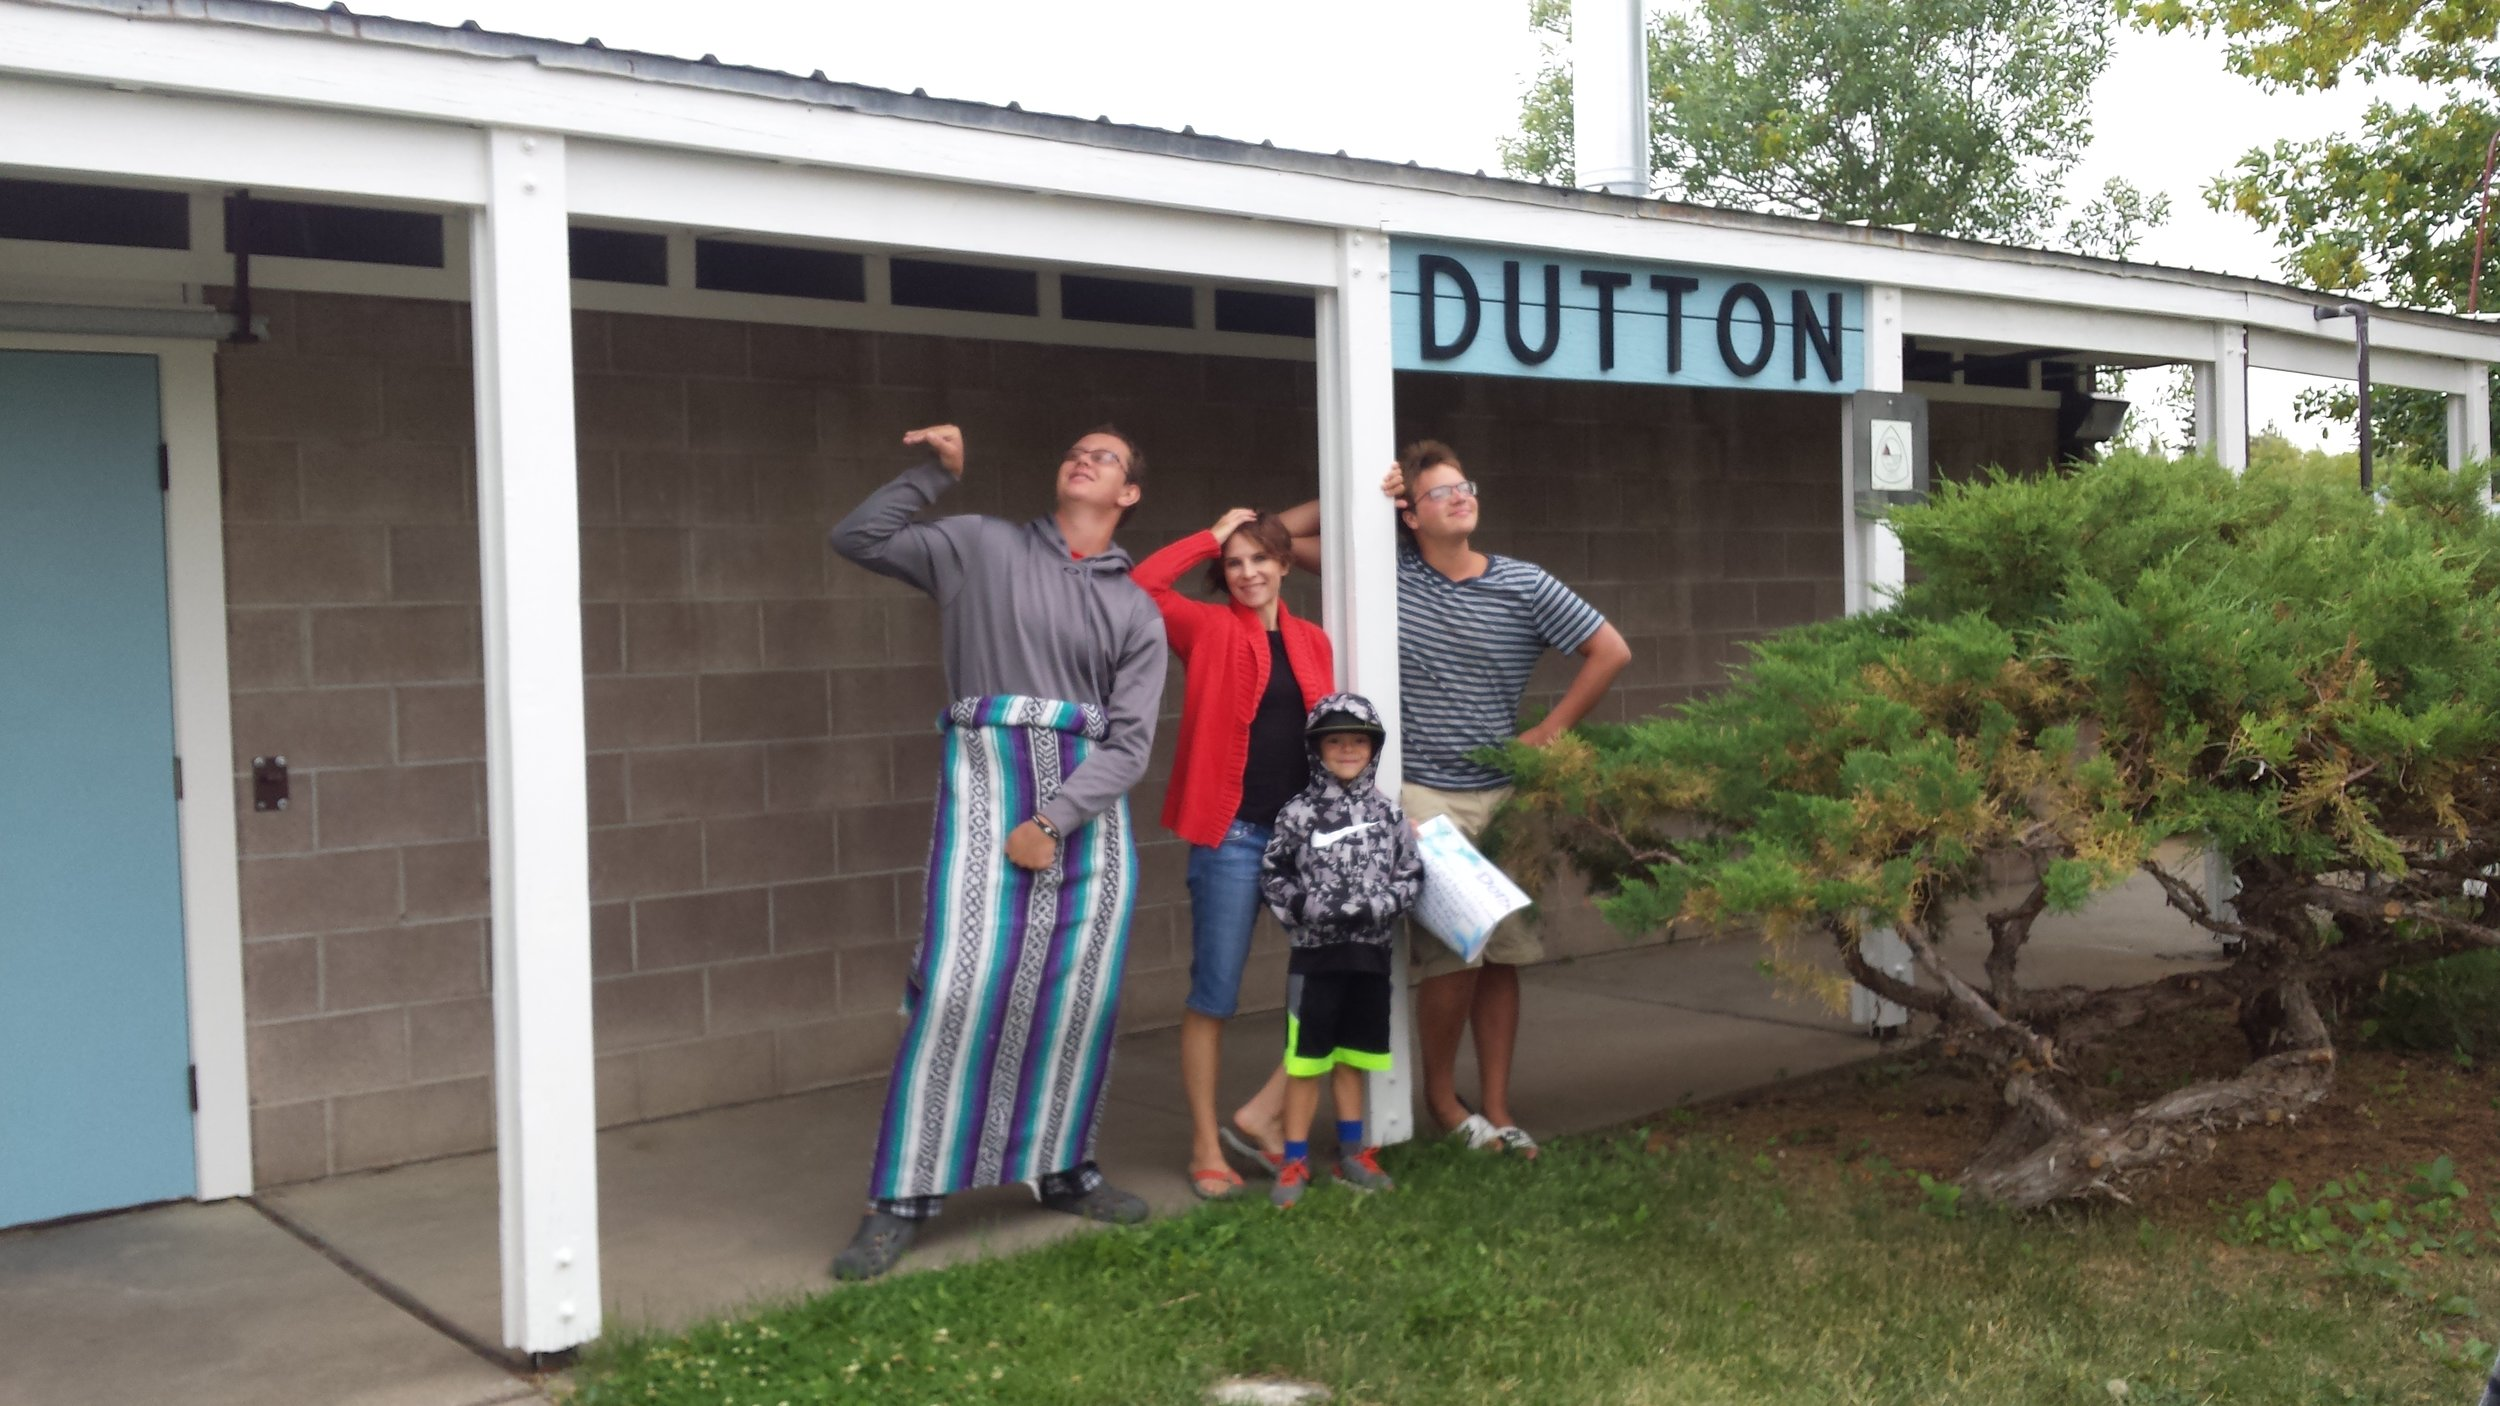 Dutton Swimmers